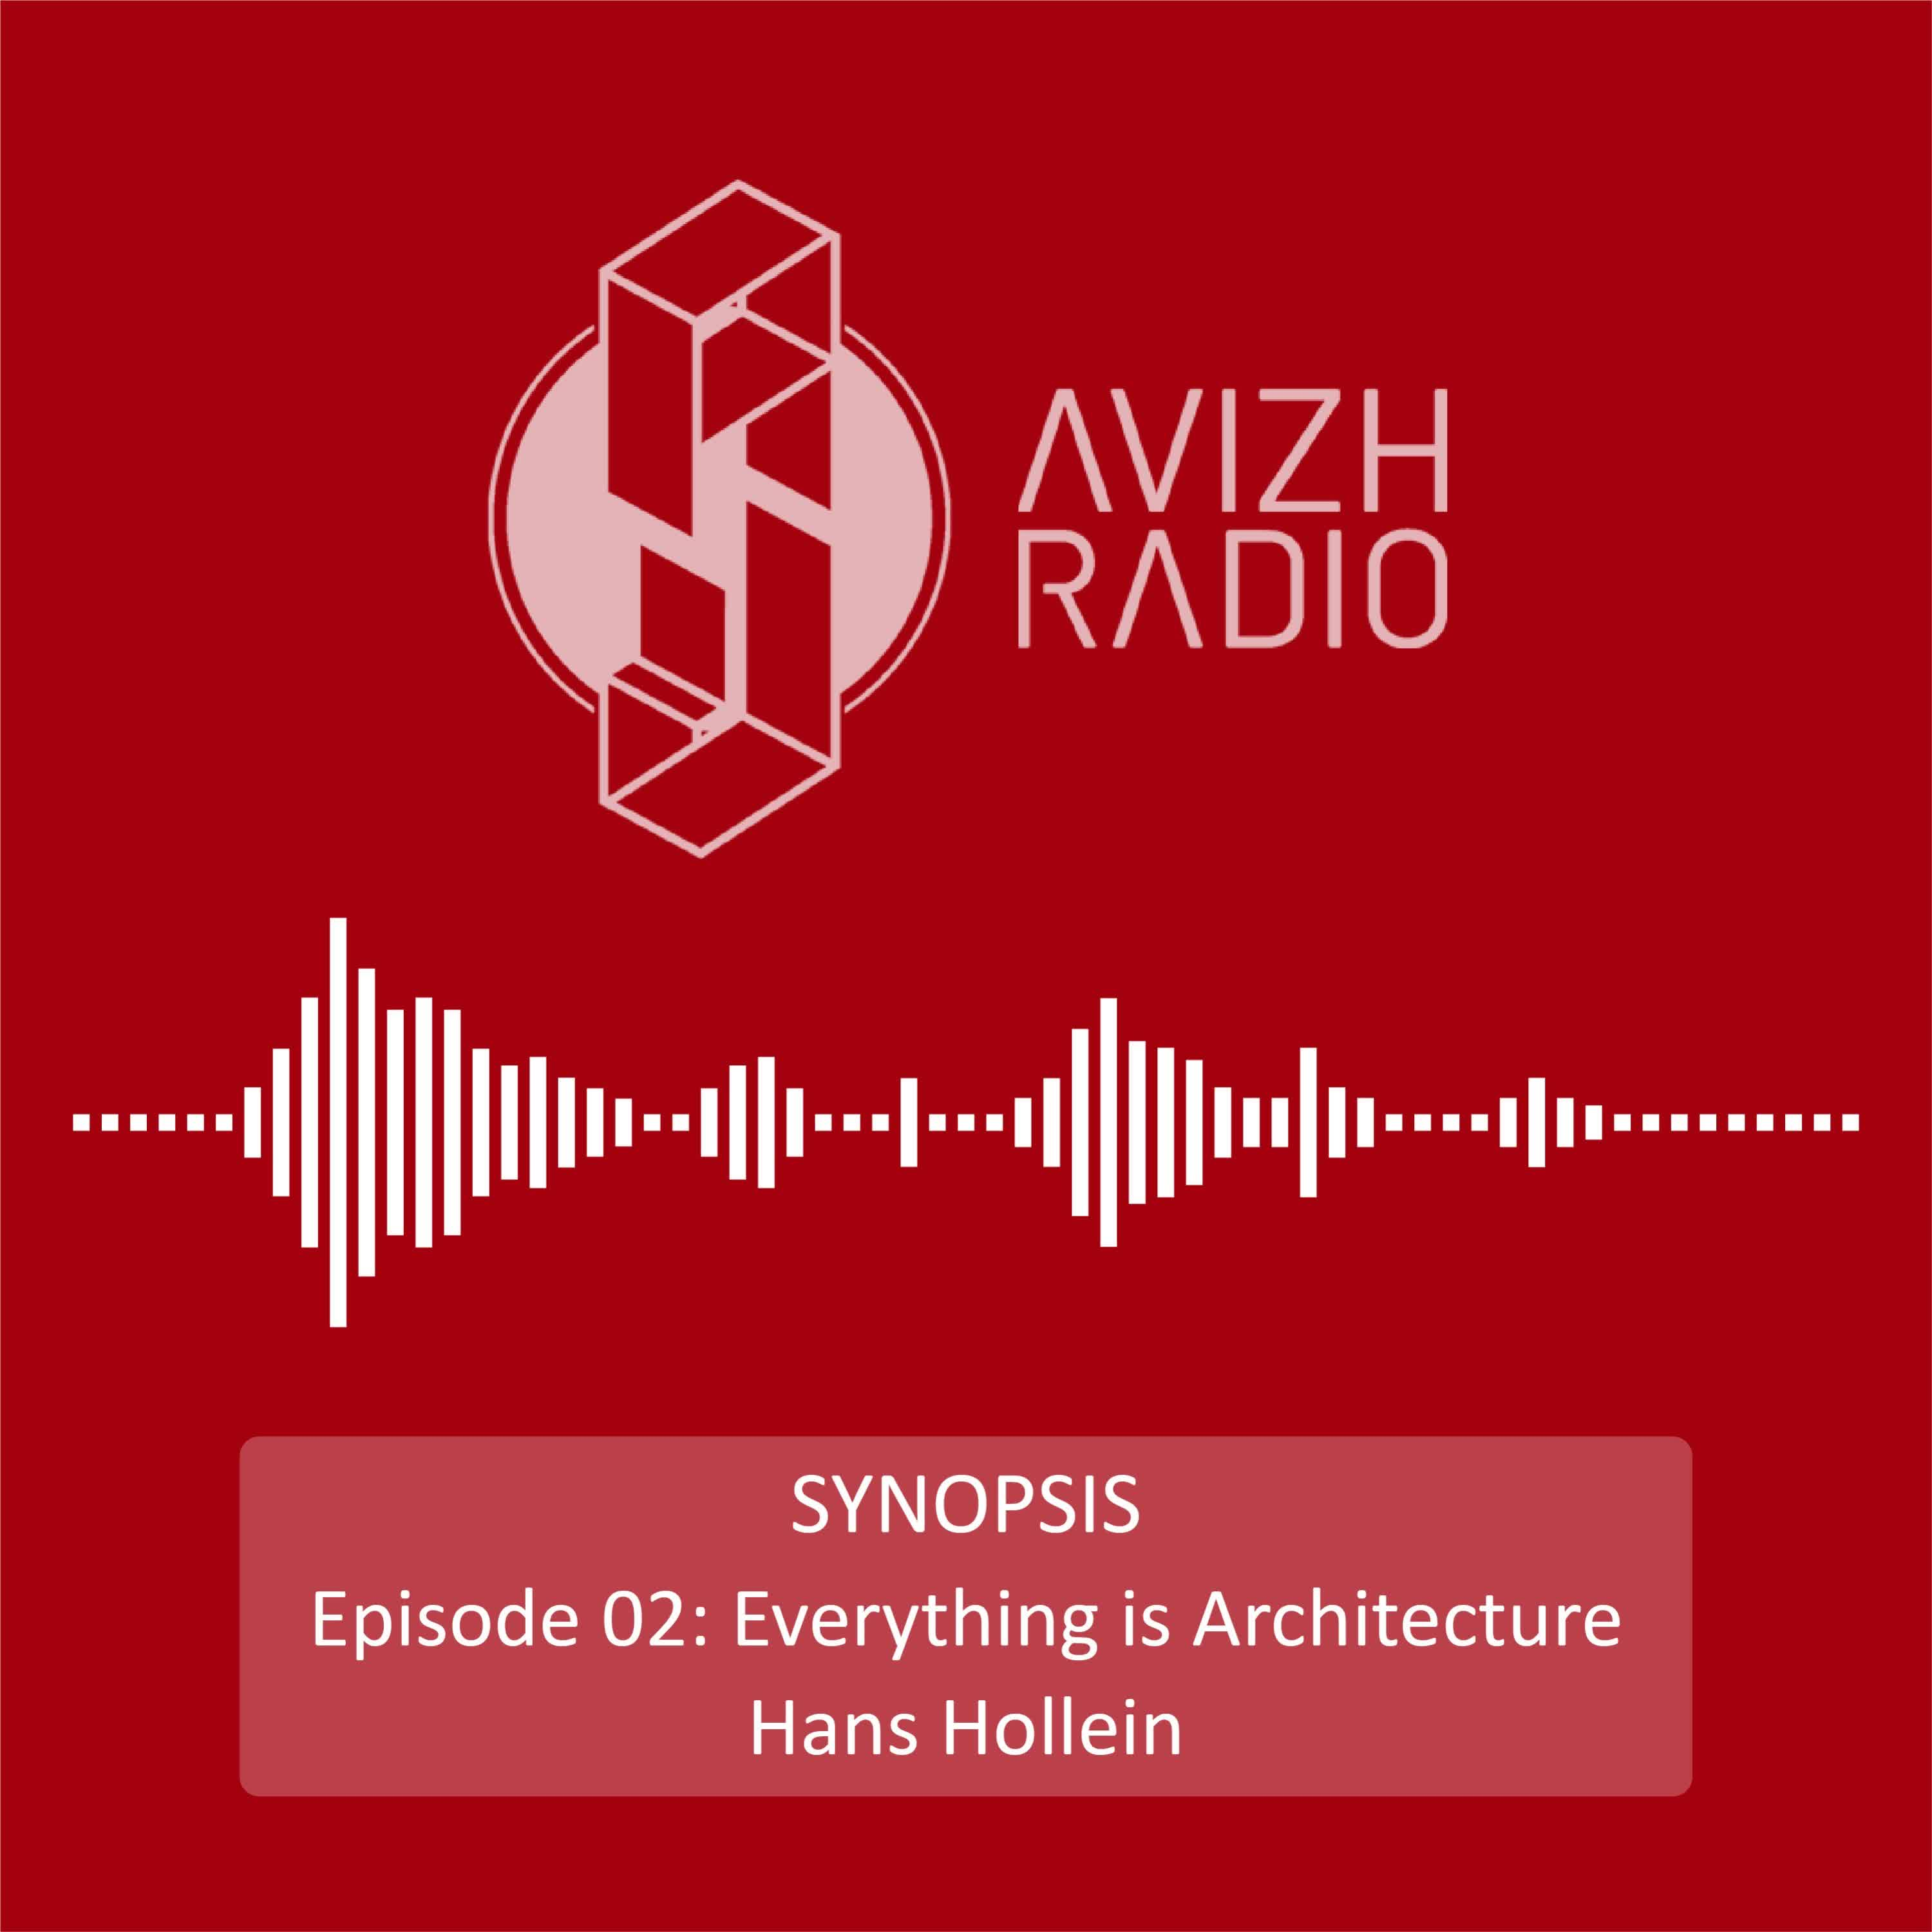 Avizh Radio | SYNOPSIS | Episode 02: Everything is architecture